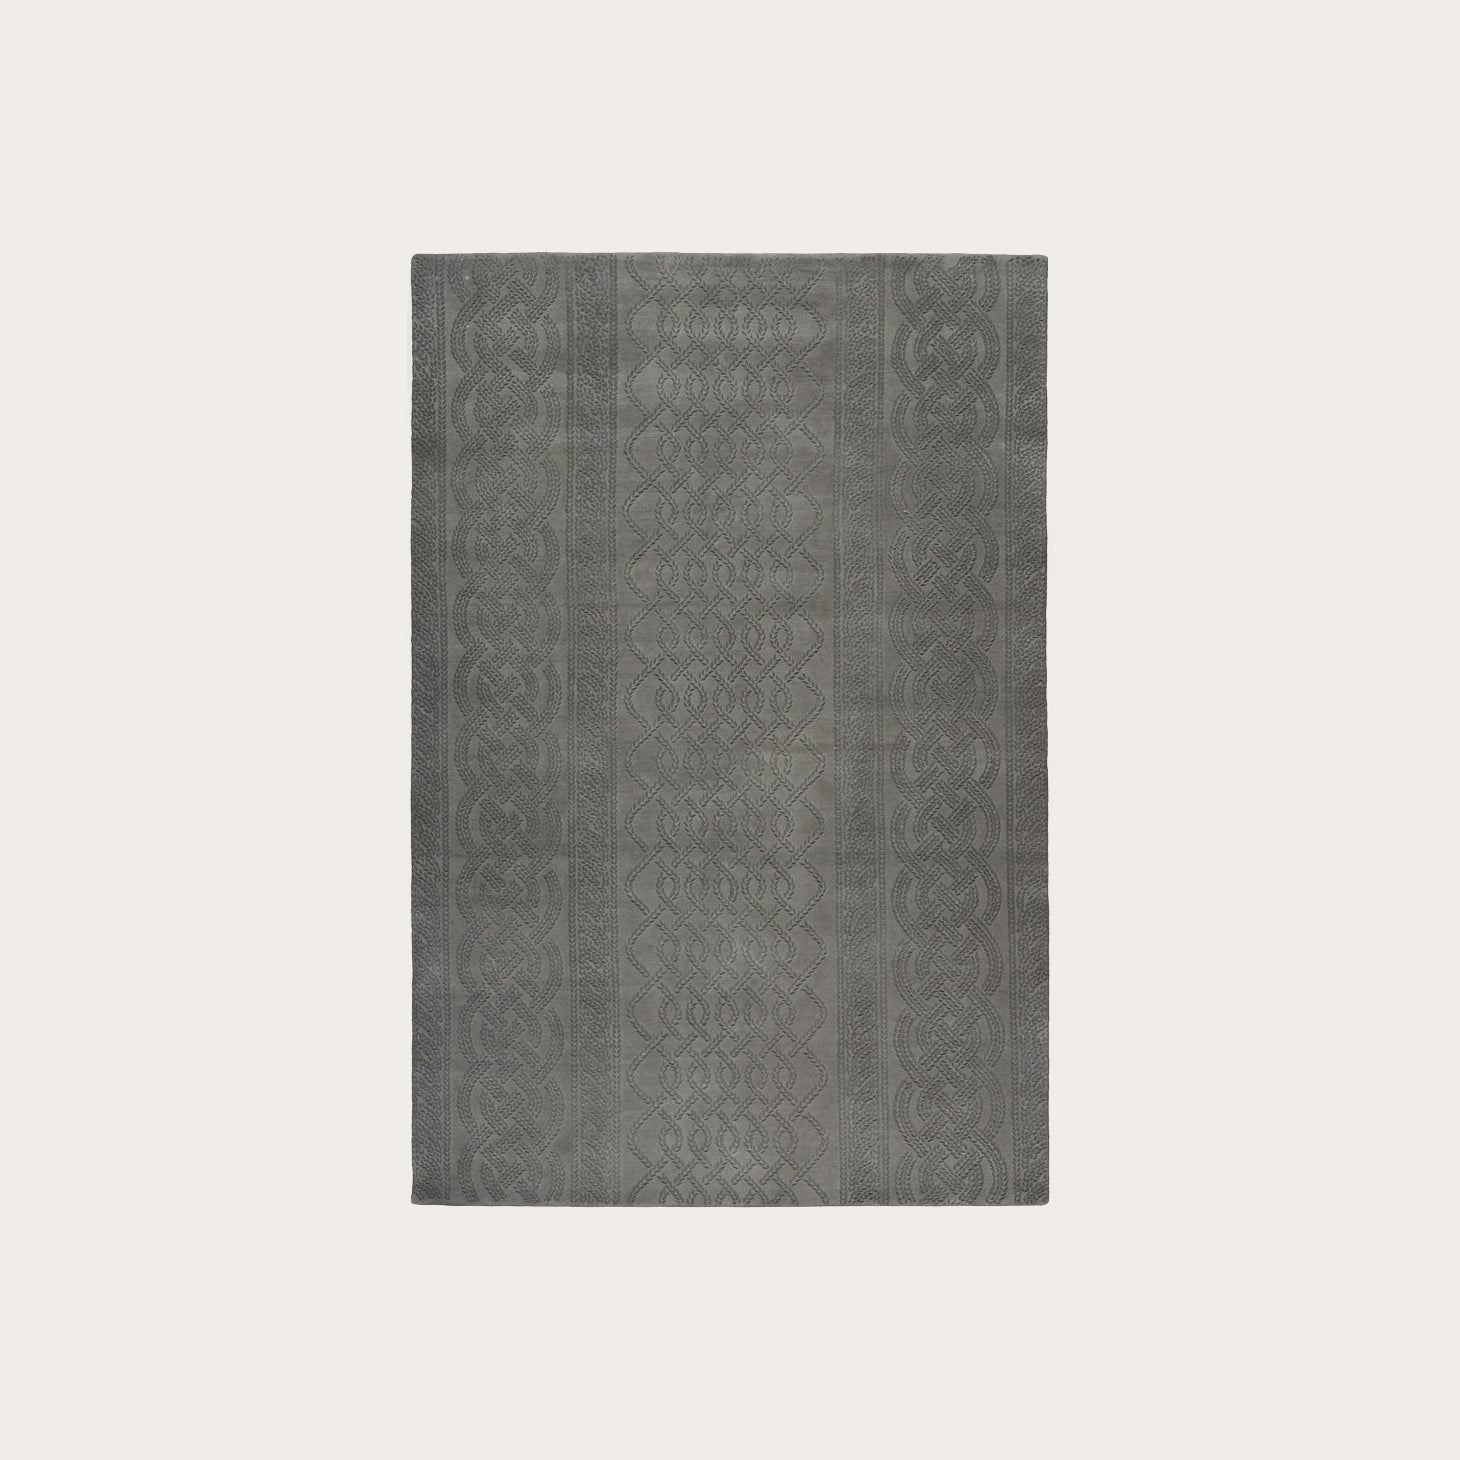 Cable Knit Grey Floor Coverings Thom Browne Designer Furniture Sku: 391-150-11255